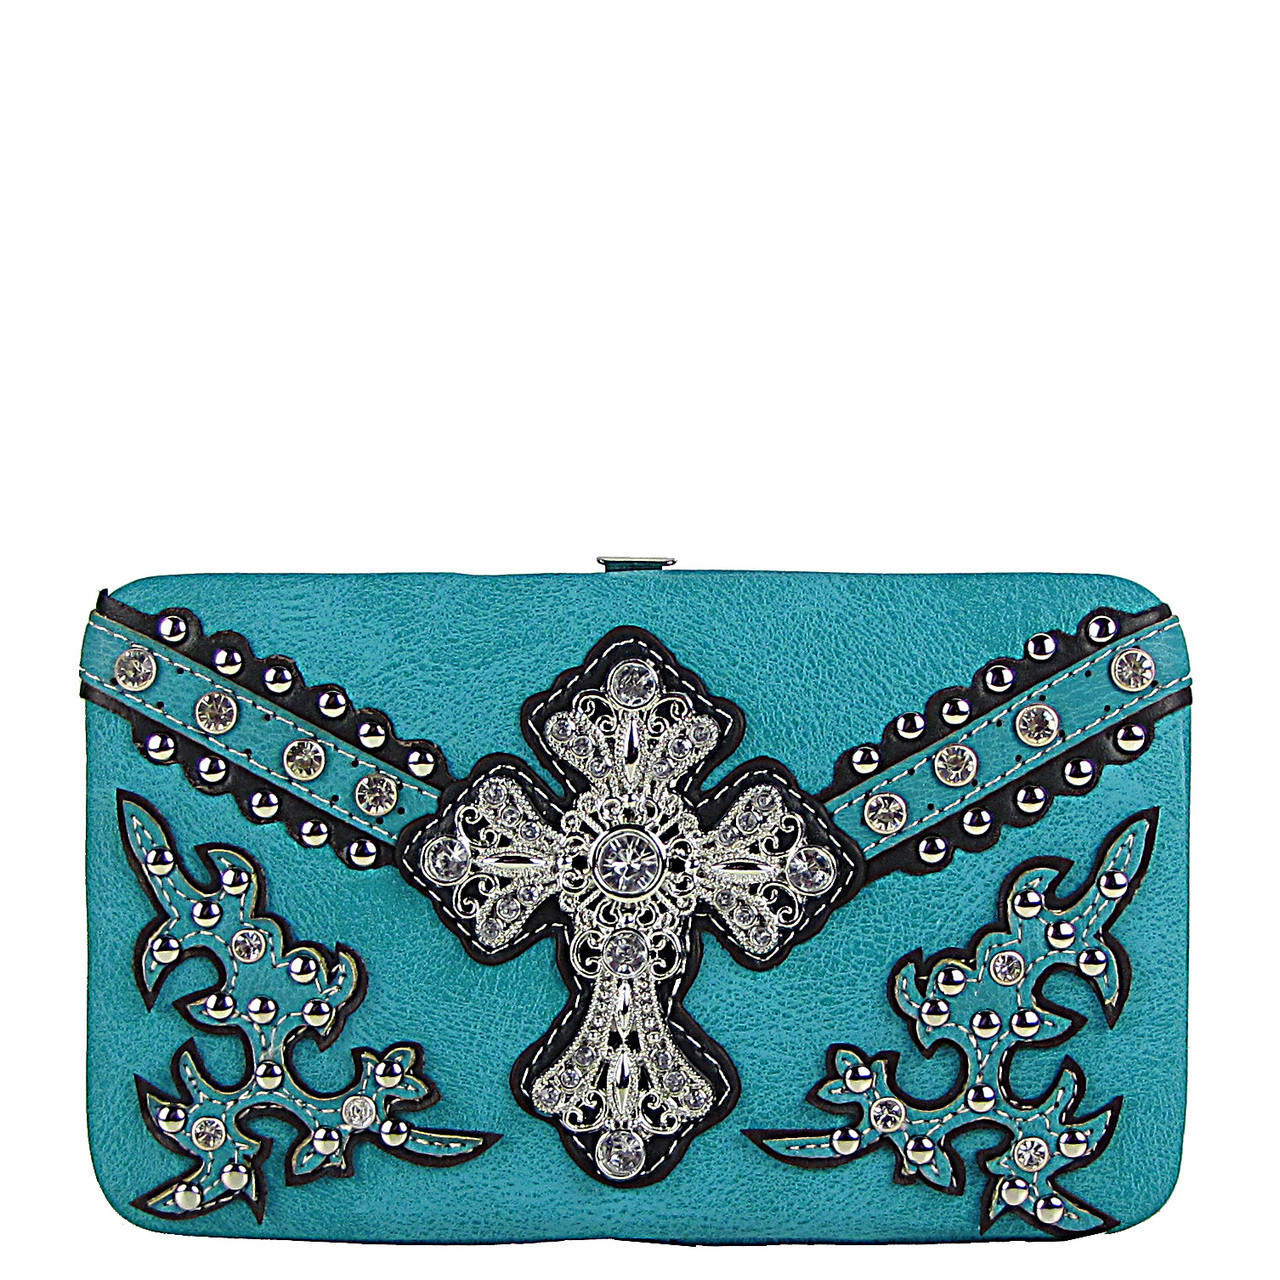 TURQUOISE STUDDED WESTERN RHINESTONE CROSS FLAT THICK WALLET FW2-04109TRQ